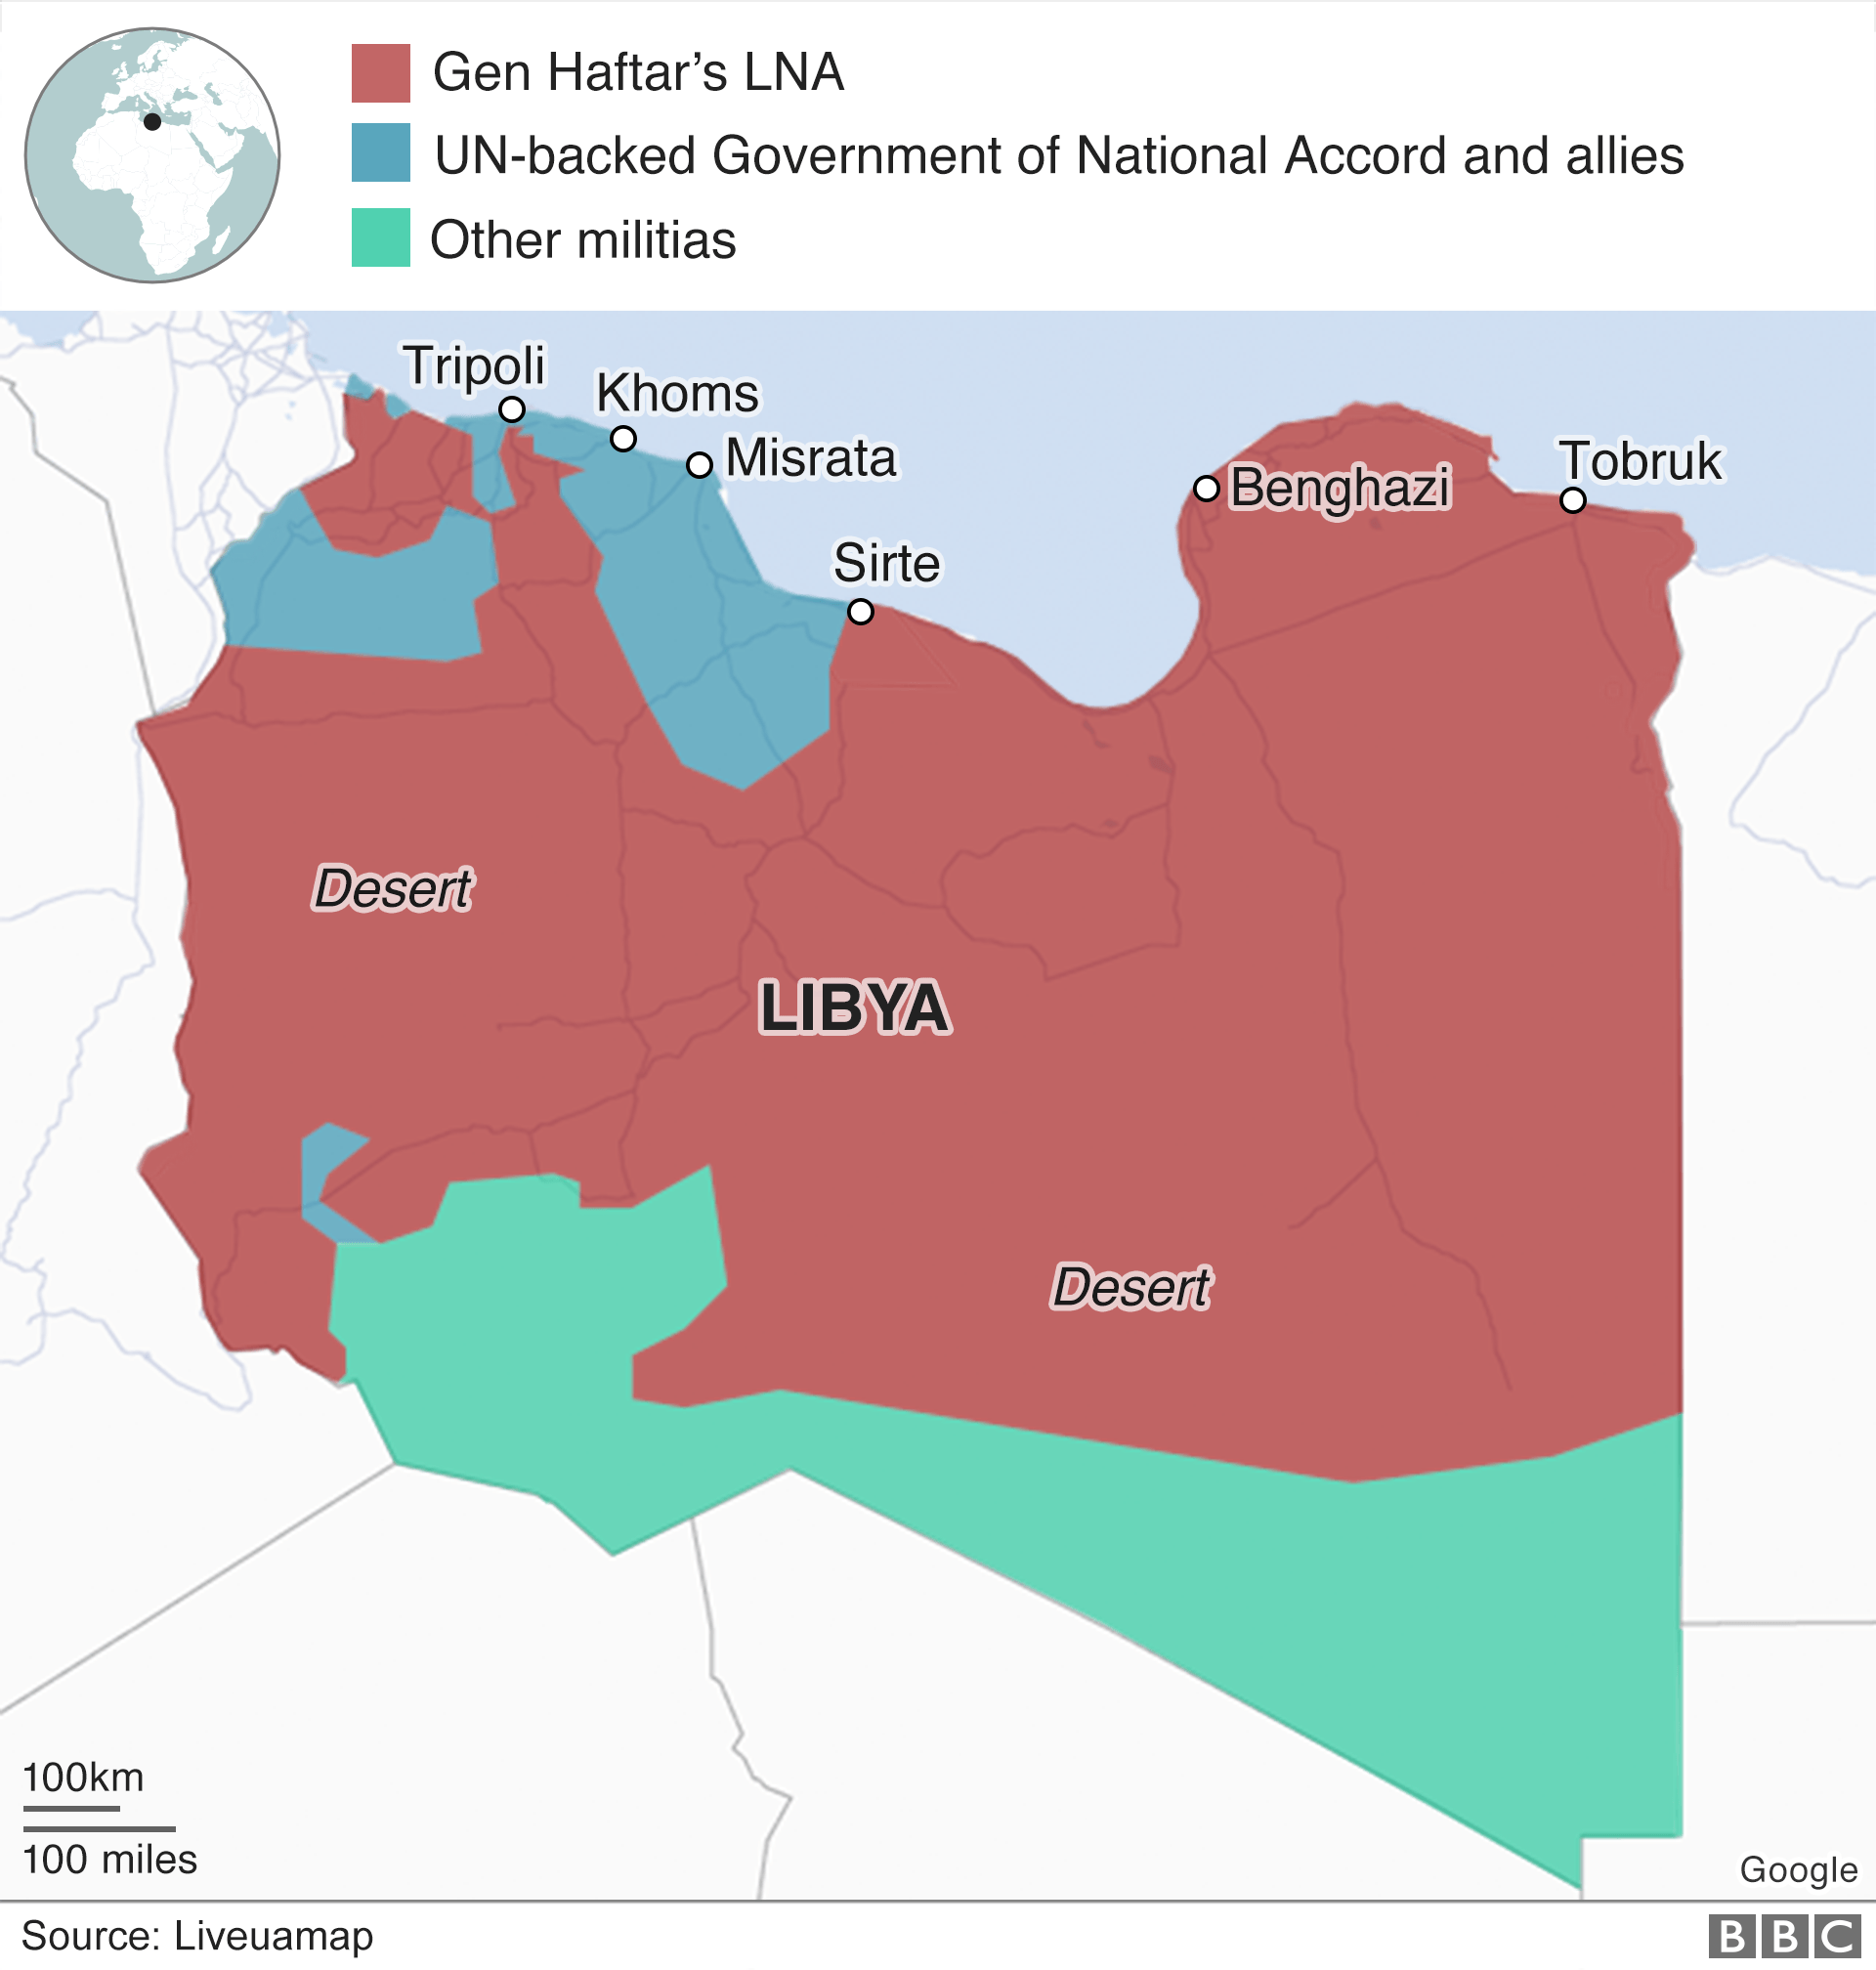 A map shows who controls different parts of Libya